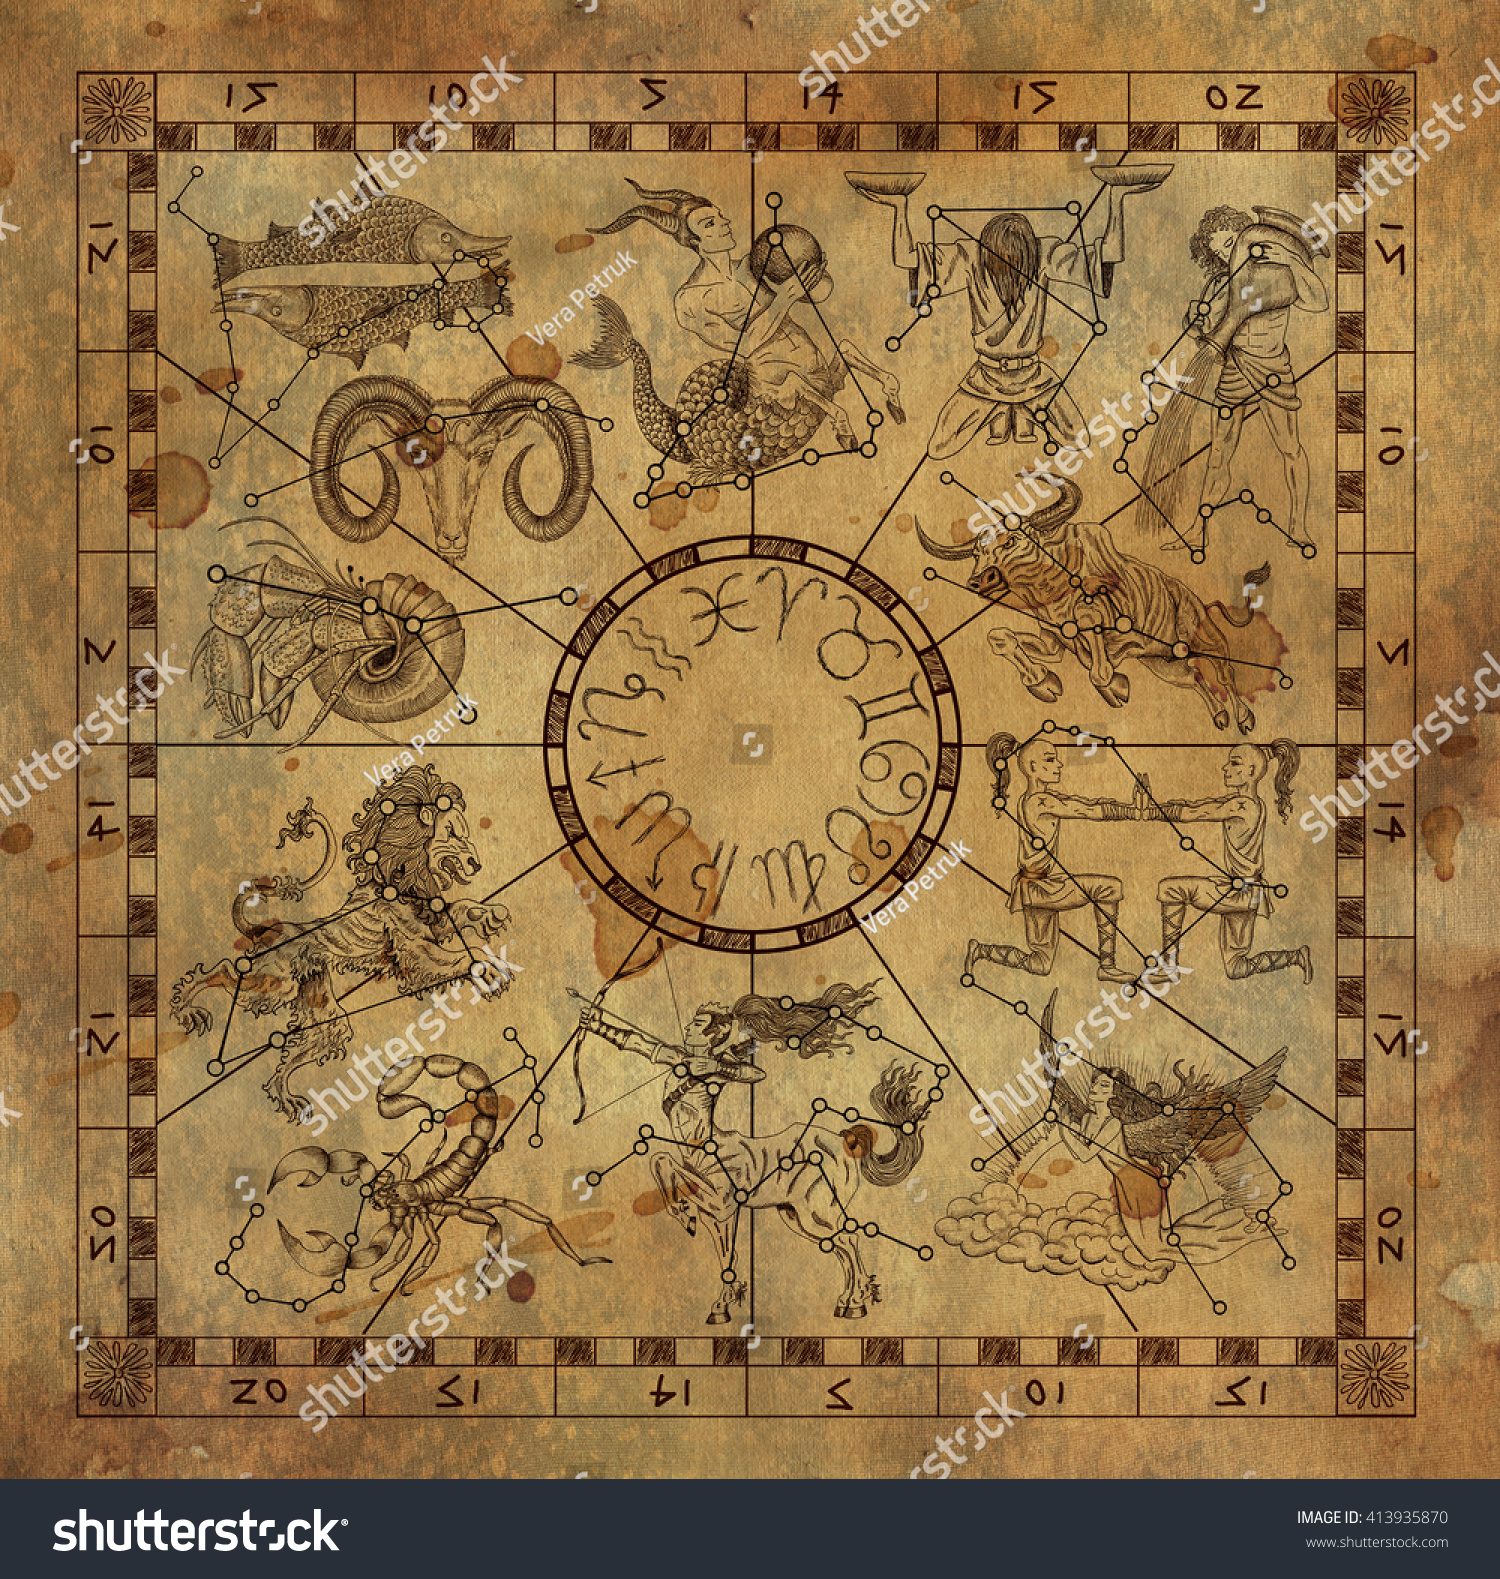 zodiac signs research paper See the best study tips for your zodiac sign here and check out what your  your  soc 3ac paper is due in 4 hours and you're currently on photo 385 out of 600.